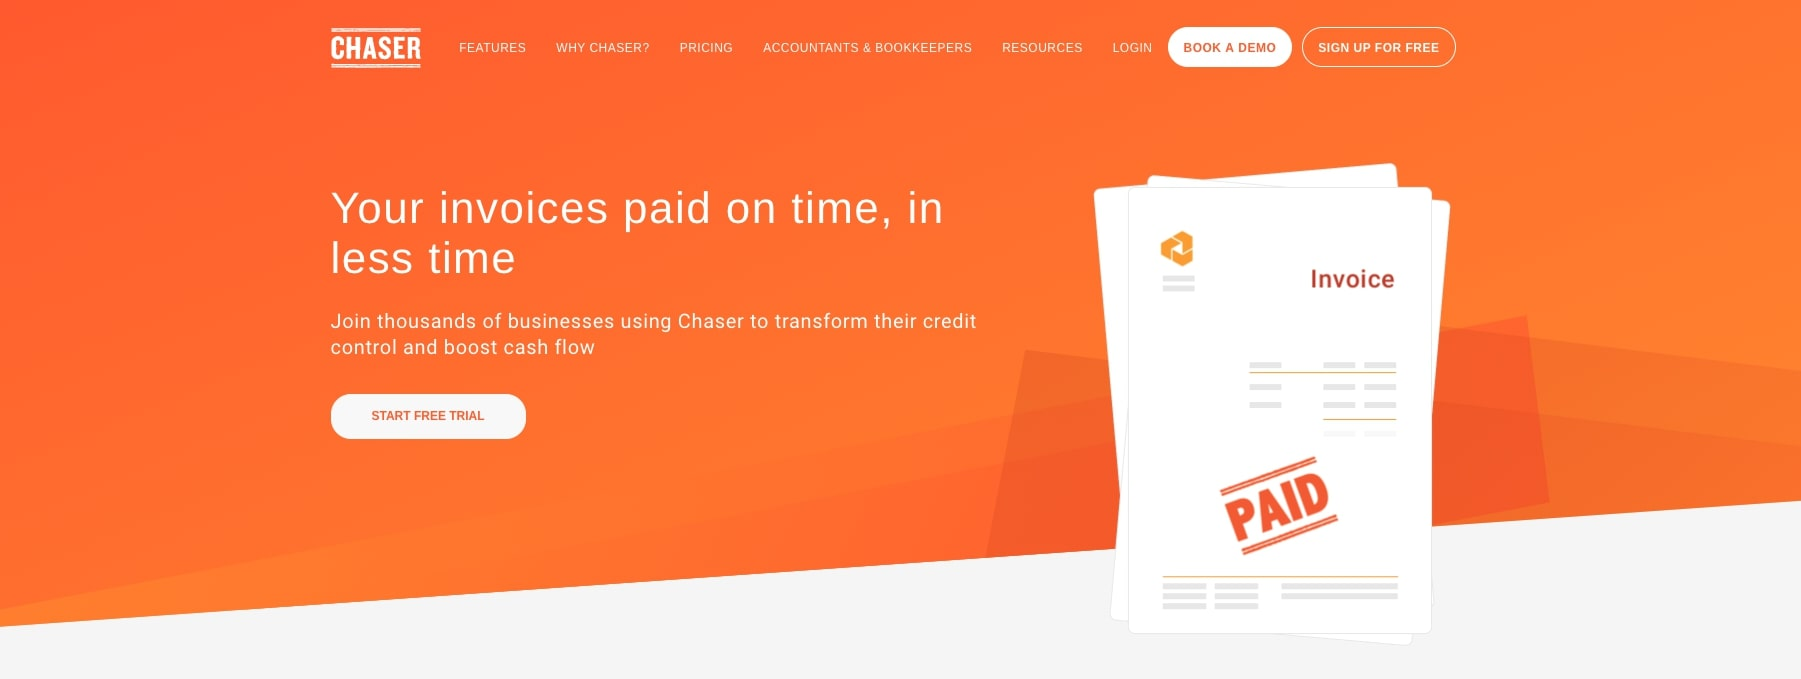 Chaser FinTech Website Homepage